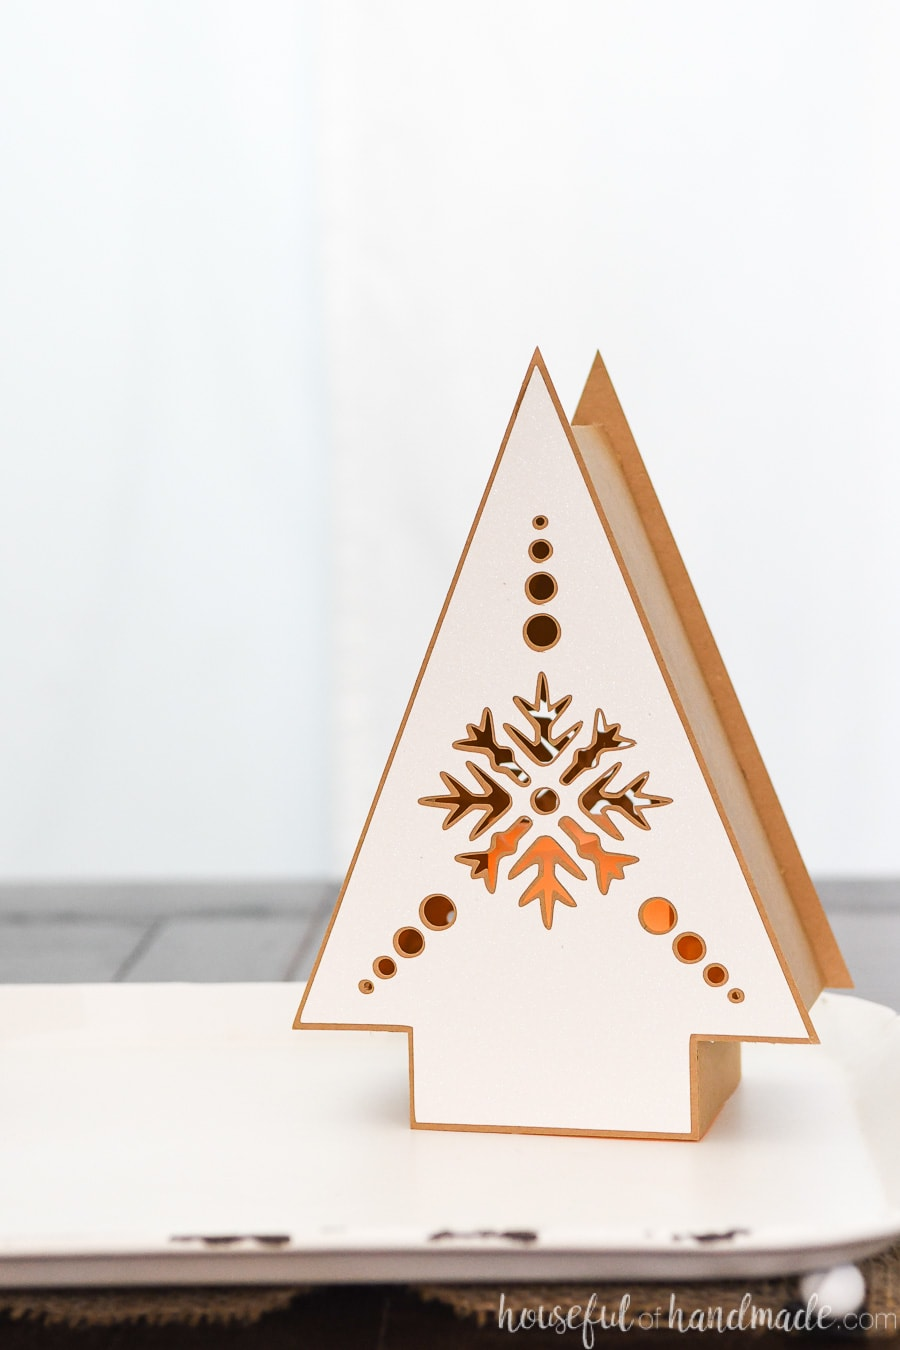 Close up photo of one of the DIY Christmas lanterns with Nordic snowflake design on it.